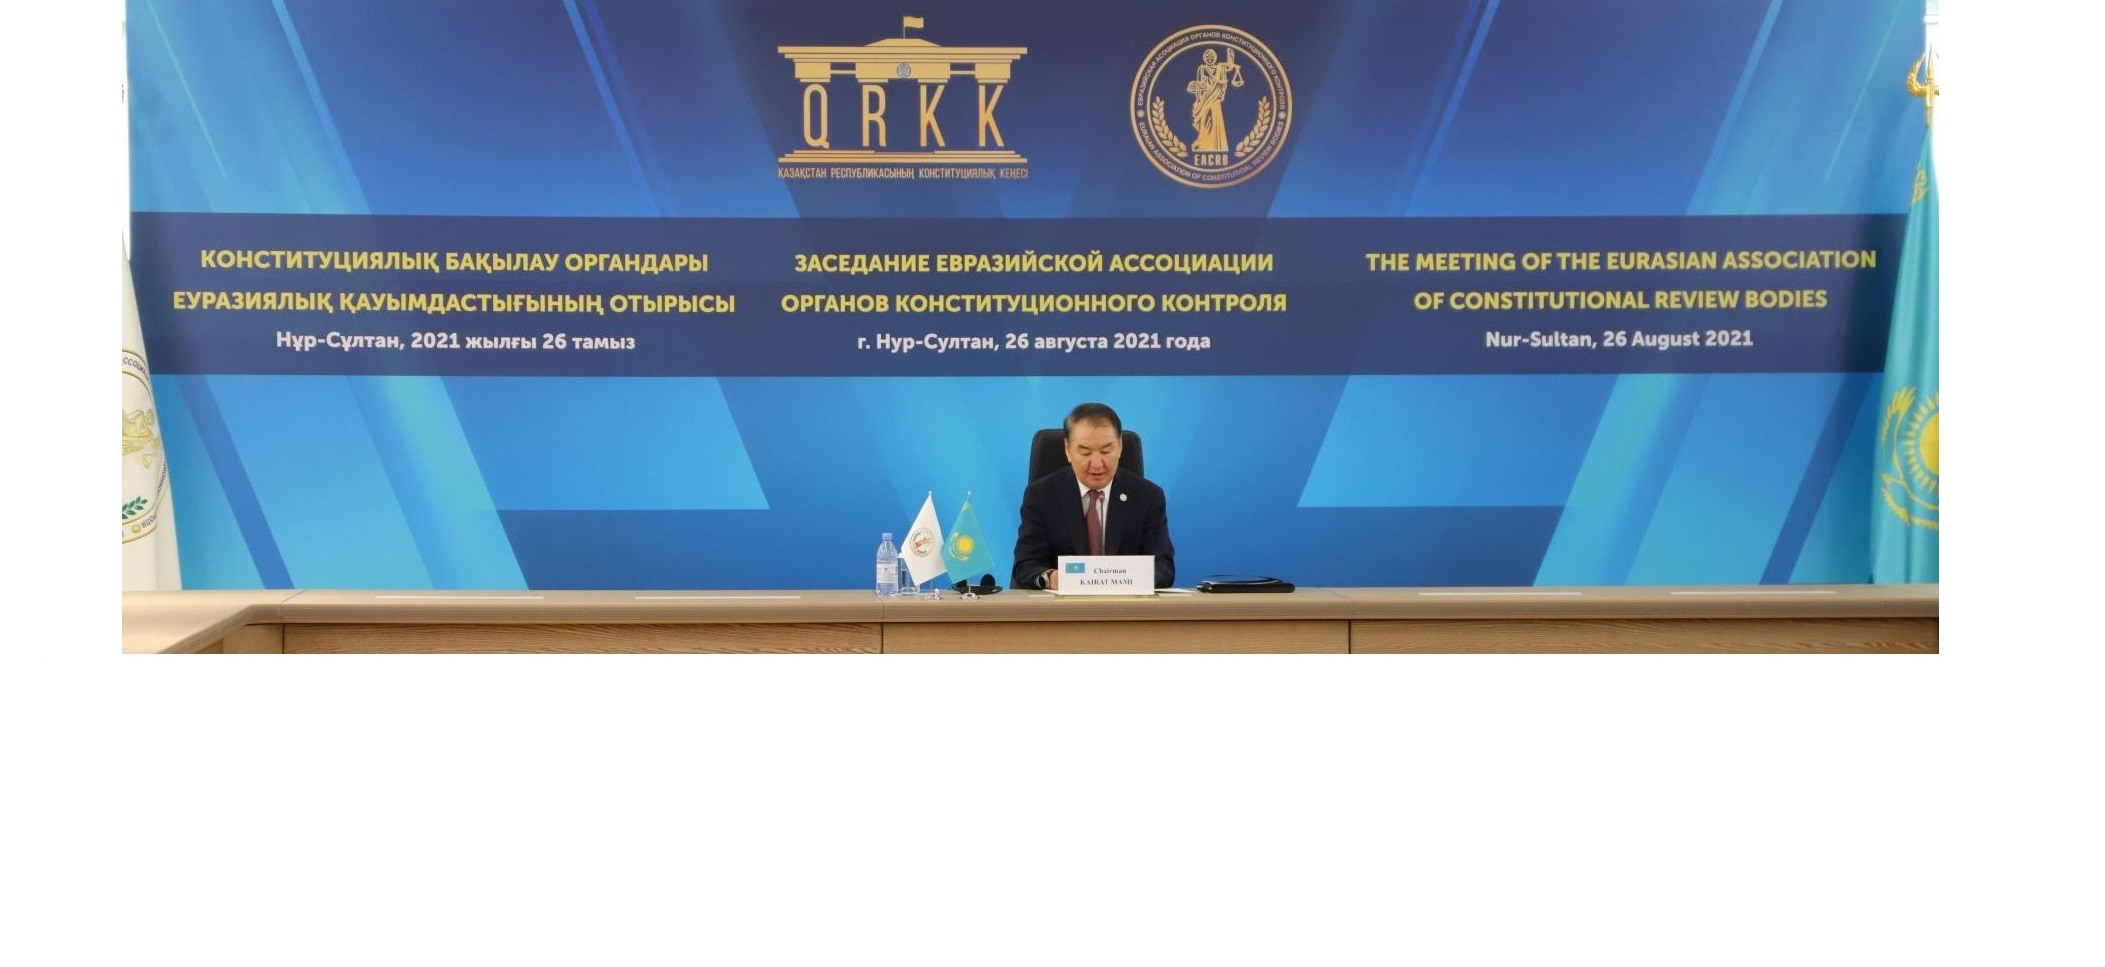 Constitutional Council of the Republic of Kazakhstan holds a meeting of the Eurasian Association of Constitutional Review Bodies